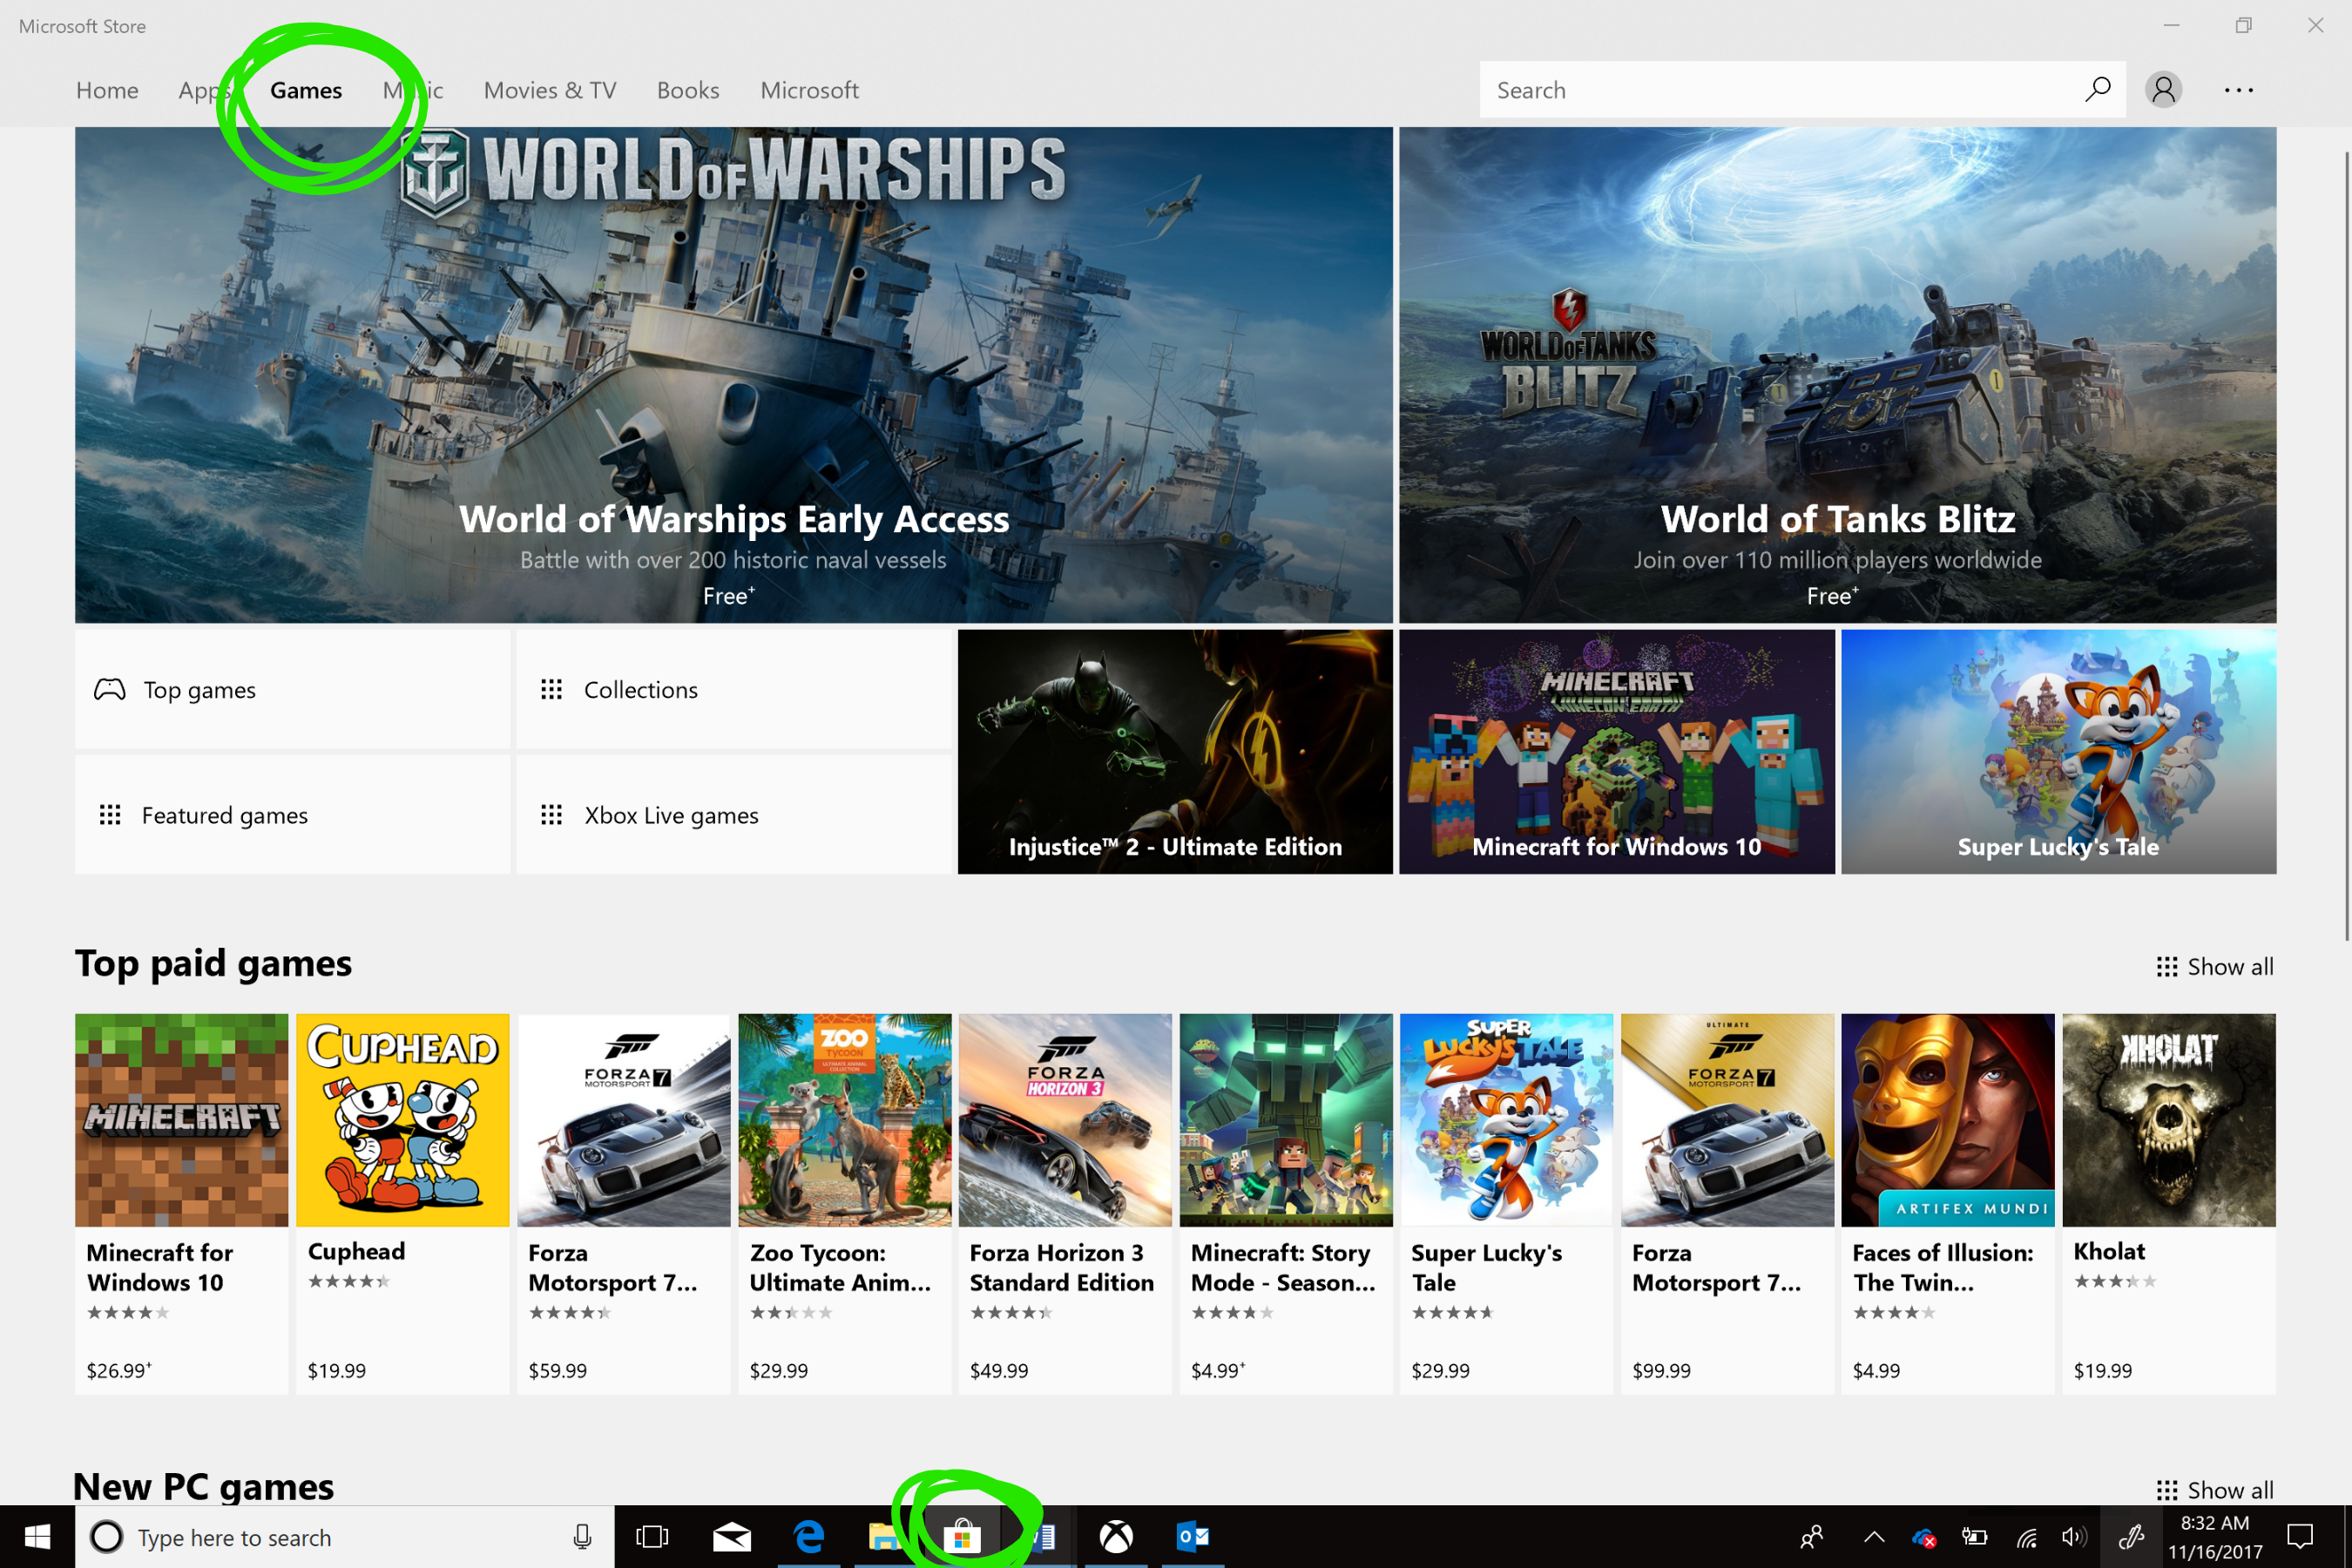 Microsoft Store Games page